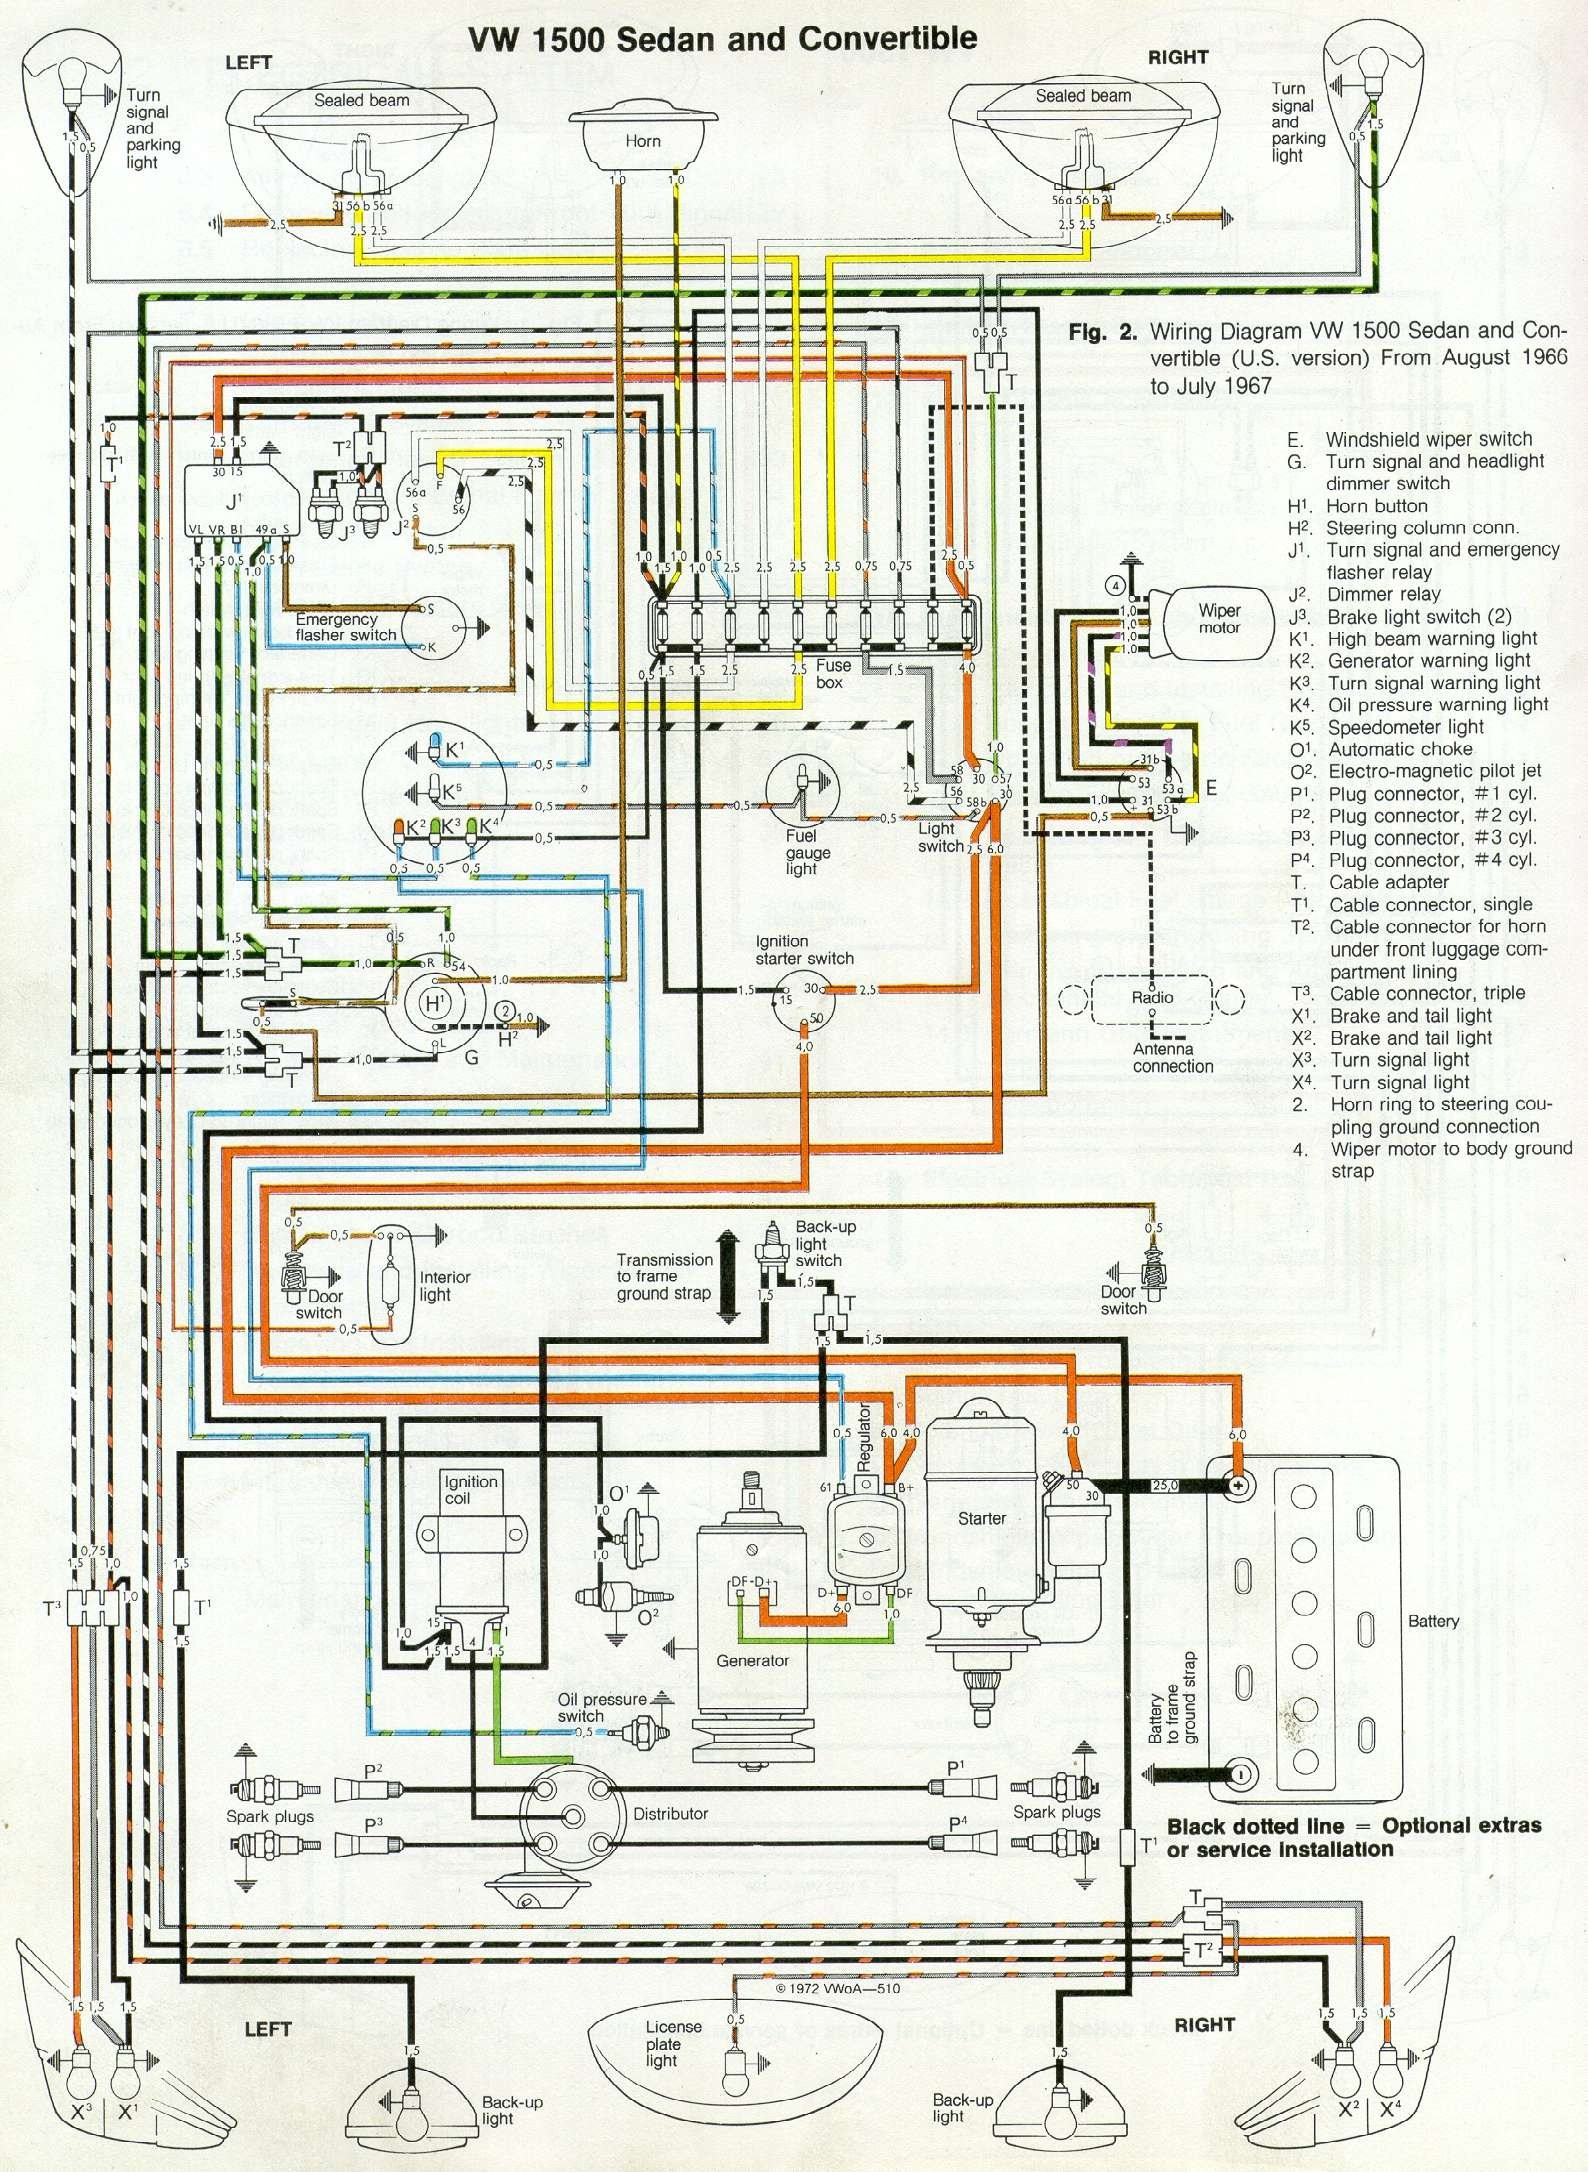 VW Beetle Wiring Digram 67 beetle wiring diagram u s version 1967 vw beetle vw bug wiring diagram at creativeand.co